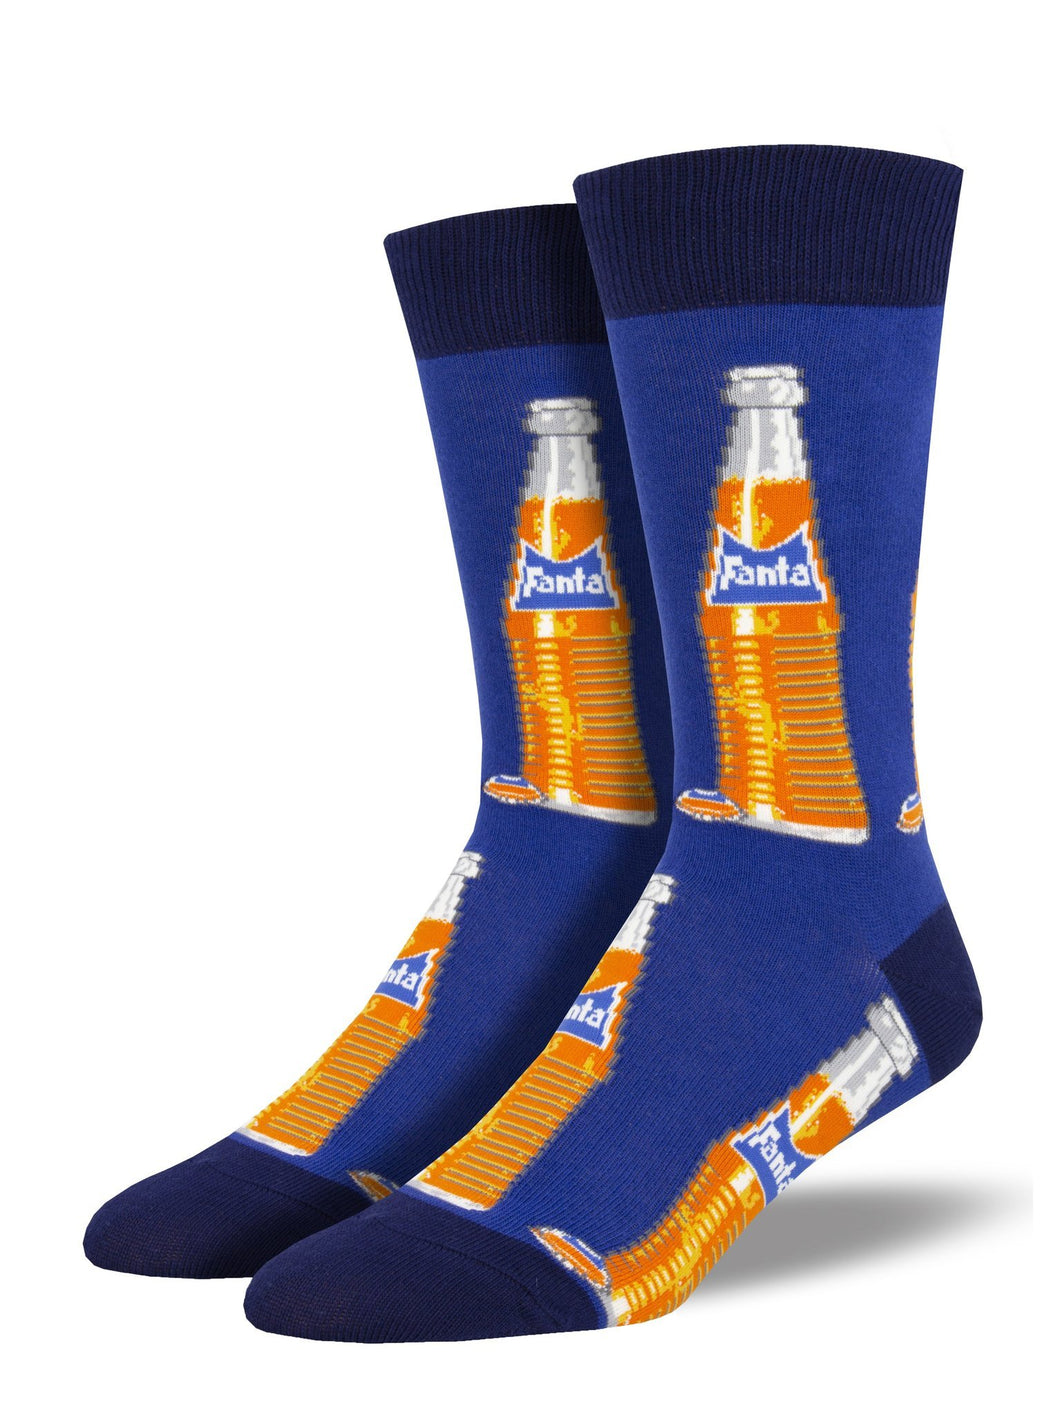 Men's Vintage Fanta Graphic Socks